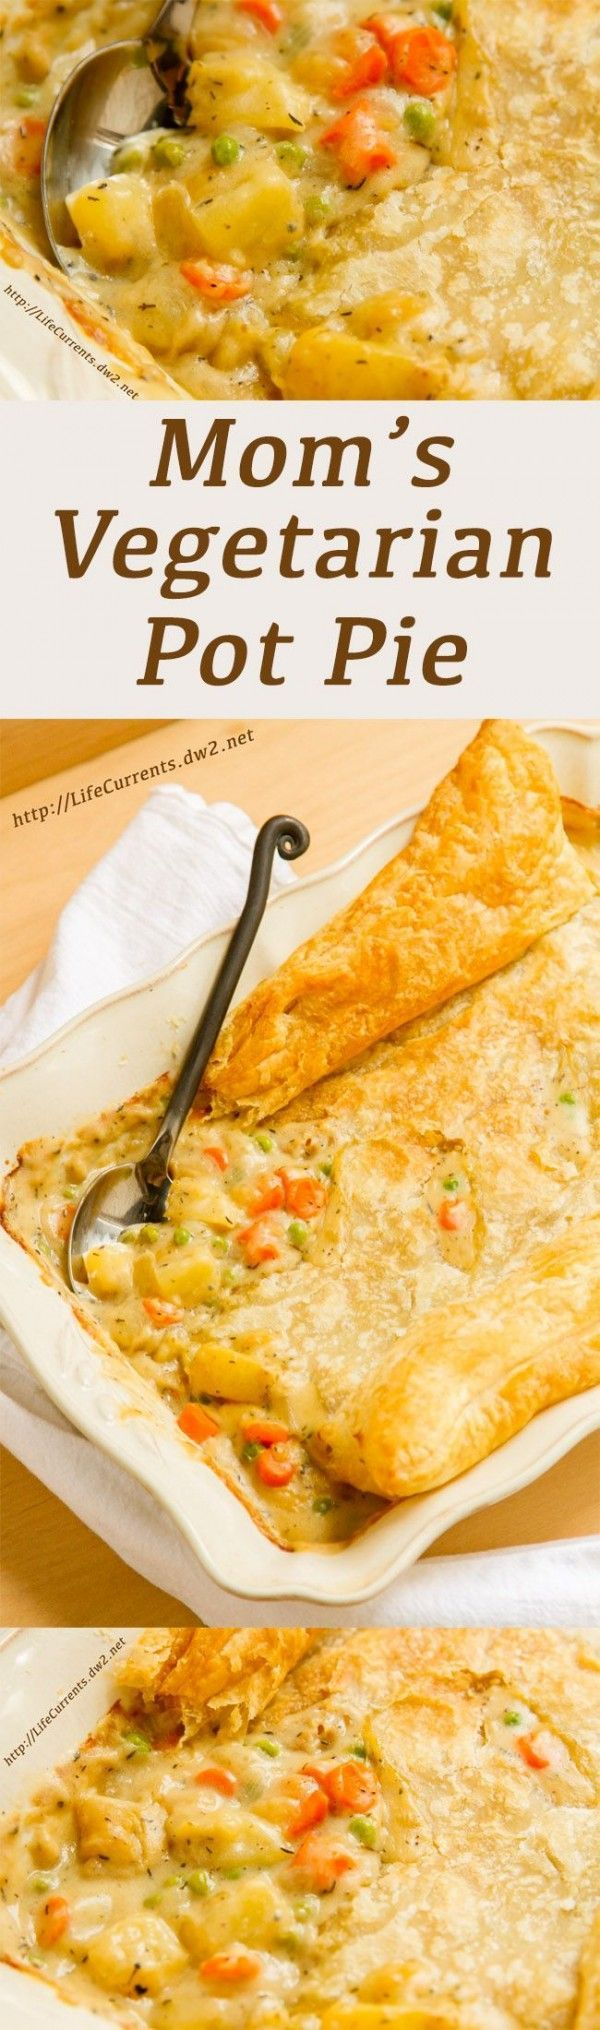 Get the recipe ♥ Mom's Vegetarian Pot Pie @recipes_to_go